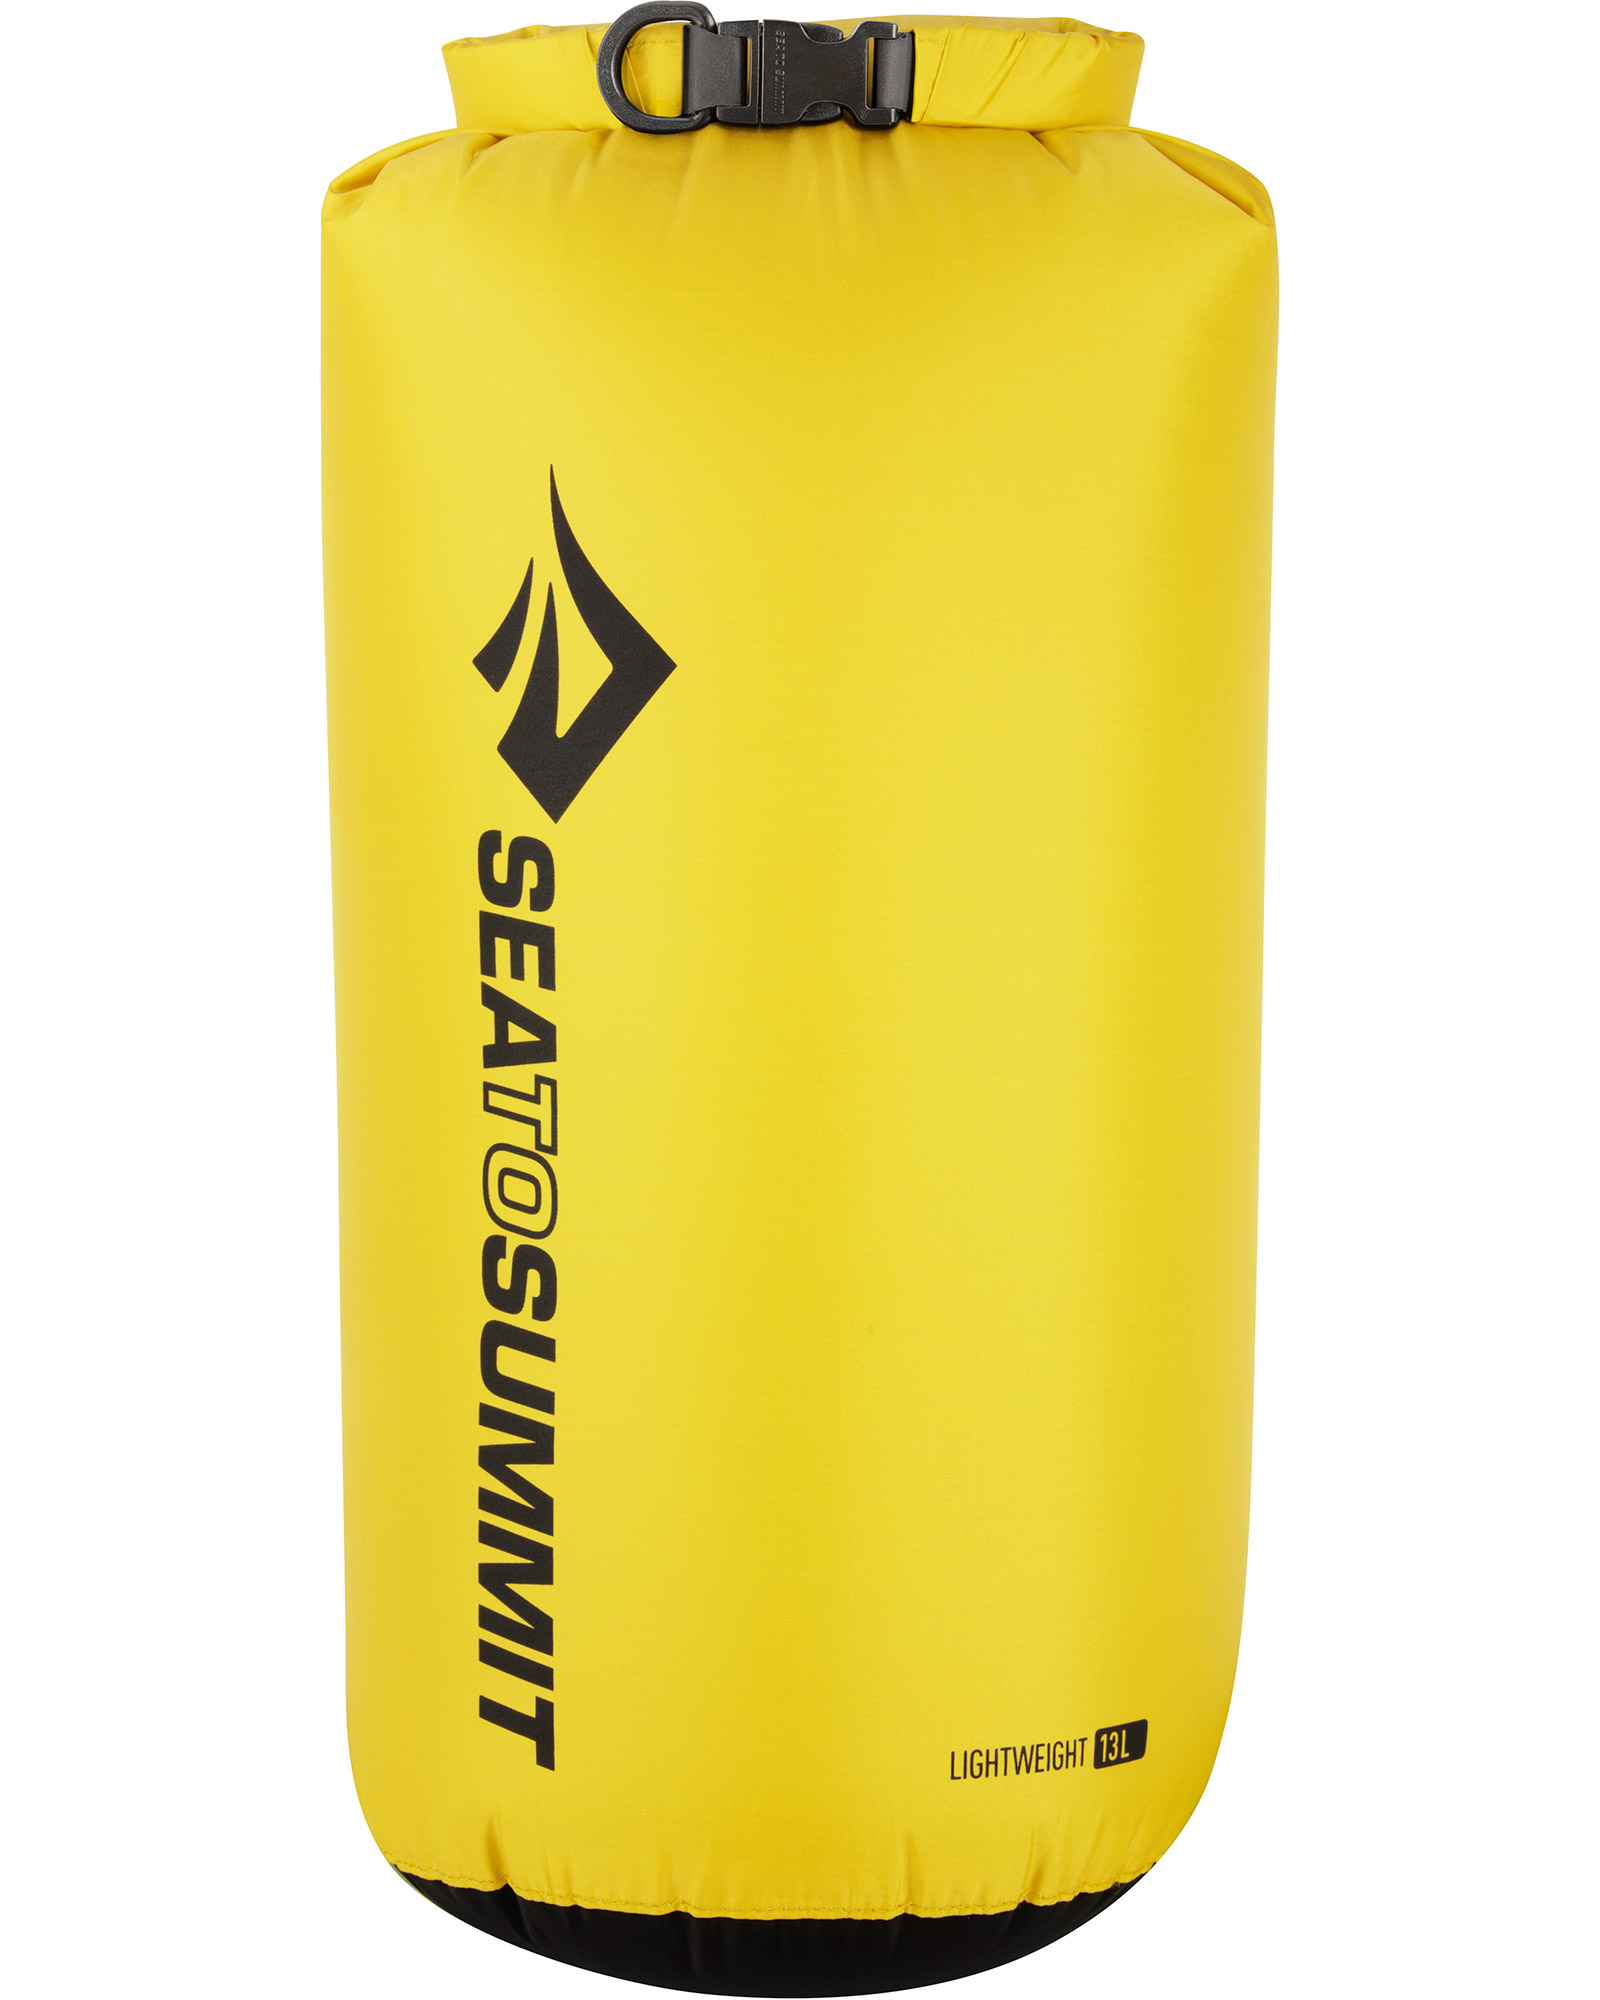 Product image of Sea to Summit Lightweight Dry Sack 13L